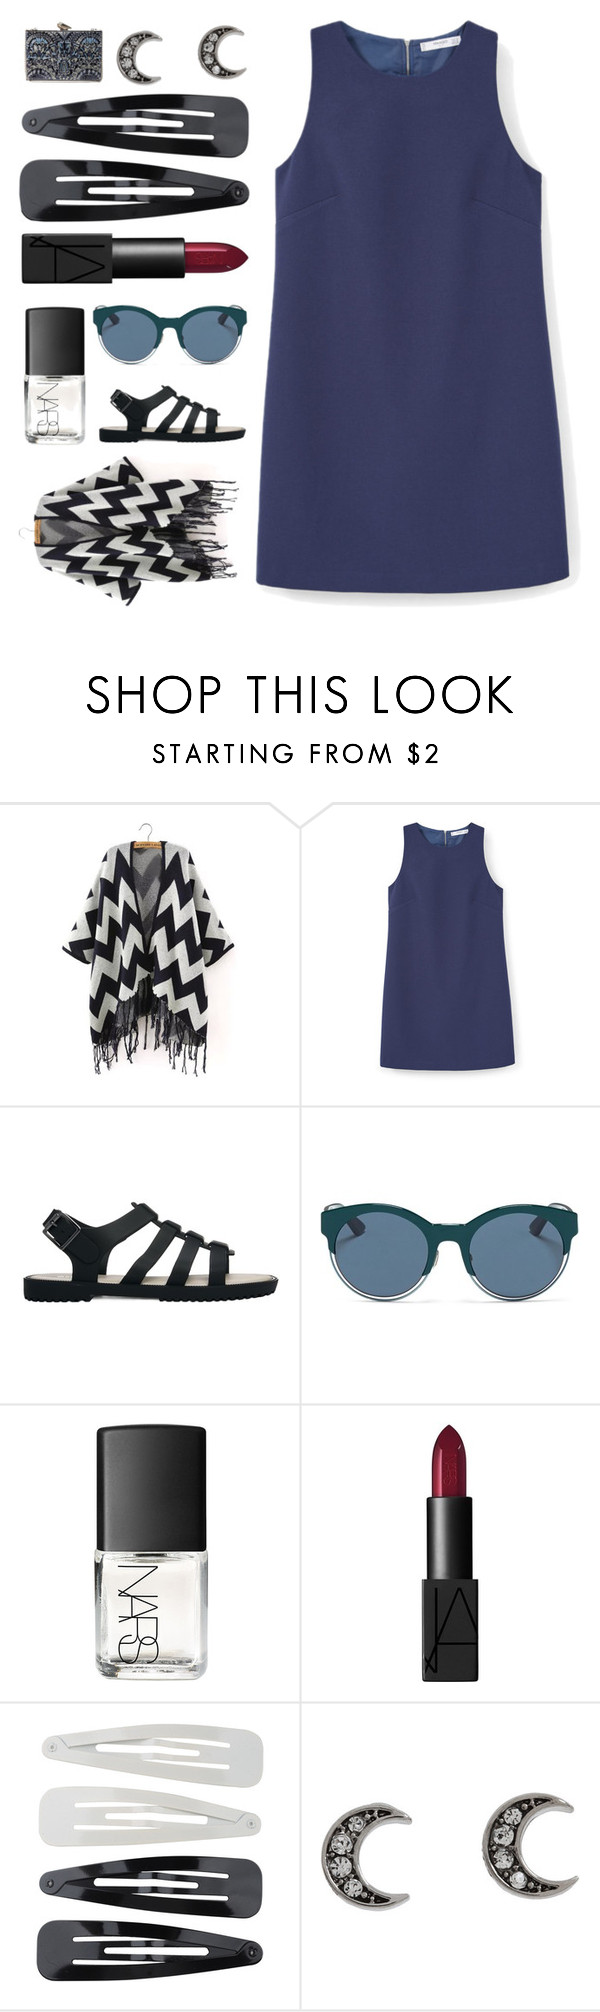 """half a heart"" by ouchm4rvel ❤ liked on Polyvore featuring MANGO, Melissa, Christian Dior, NARS Cosmetics, Forever 21, Juicy Couture and KOTUR"